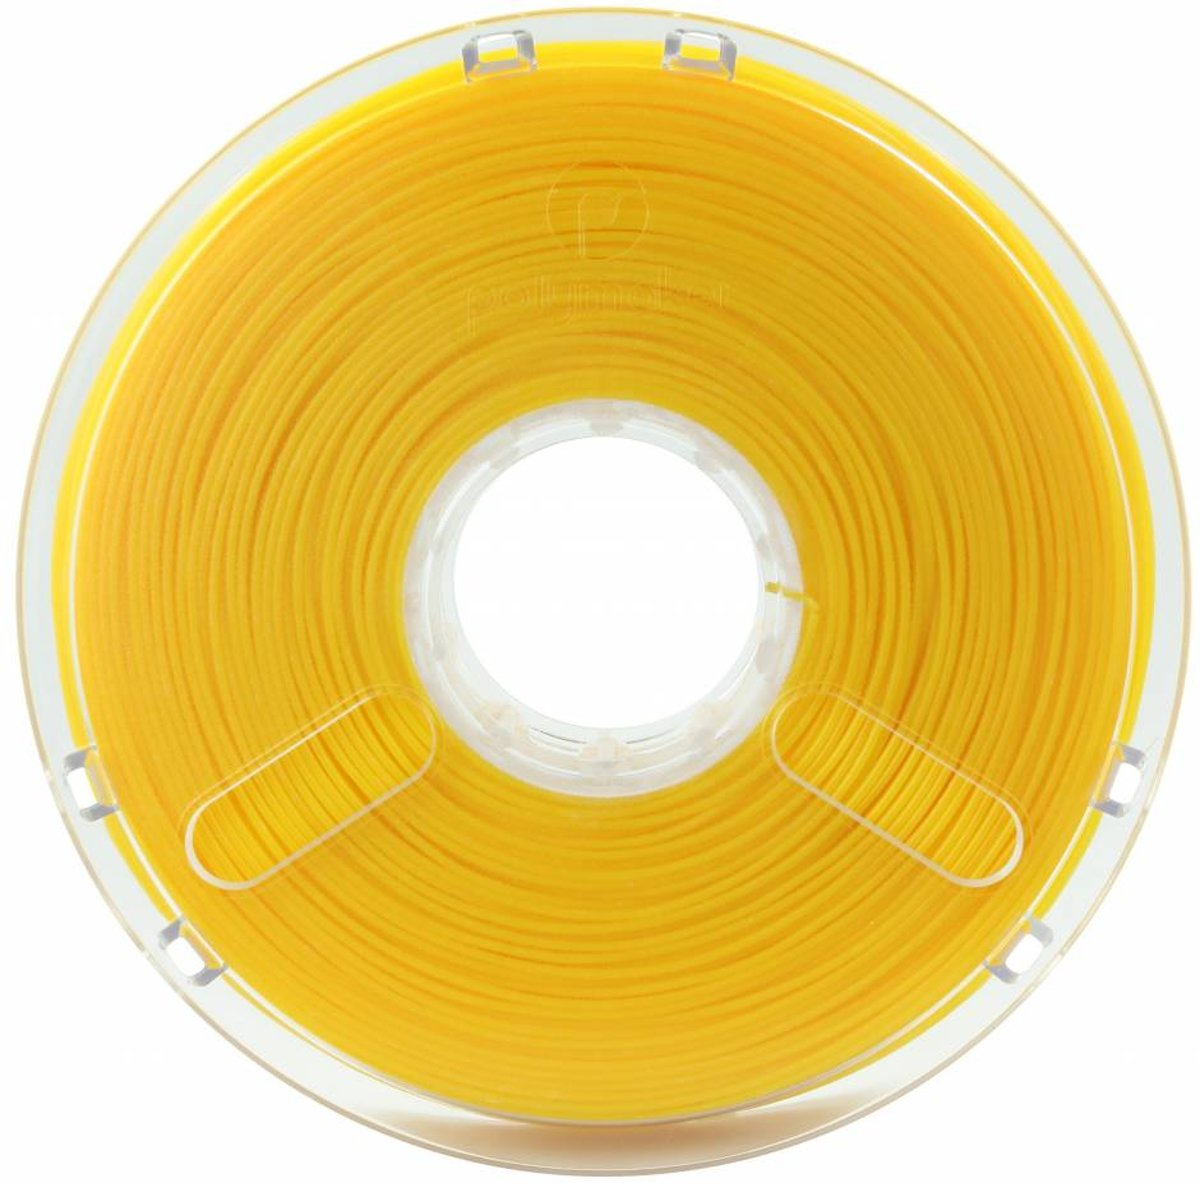 Polymaker Filament voor 3D-printer PolyMax PLA Jam Free Technology 1.75 mm 0.75 kg - True Yellow